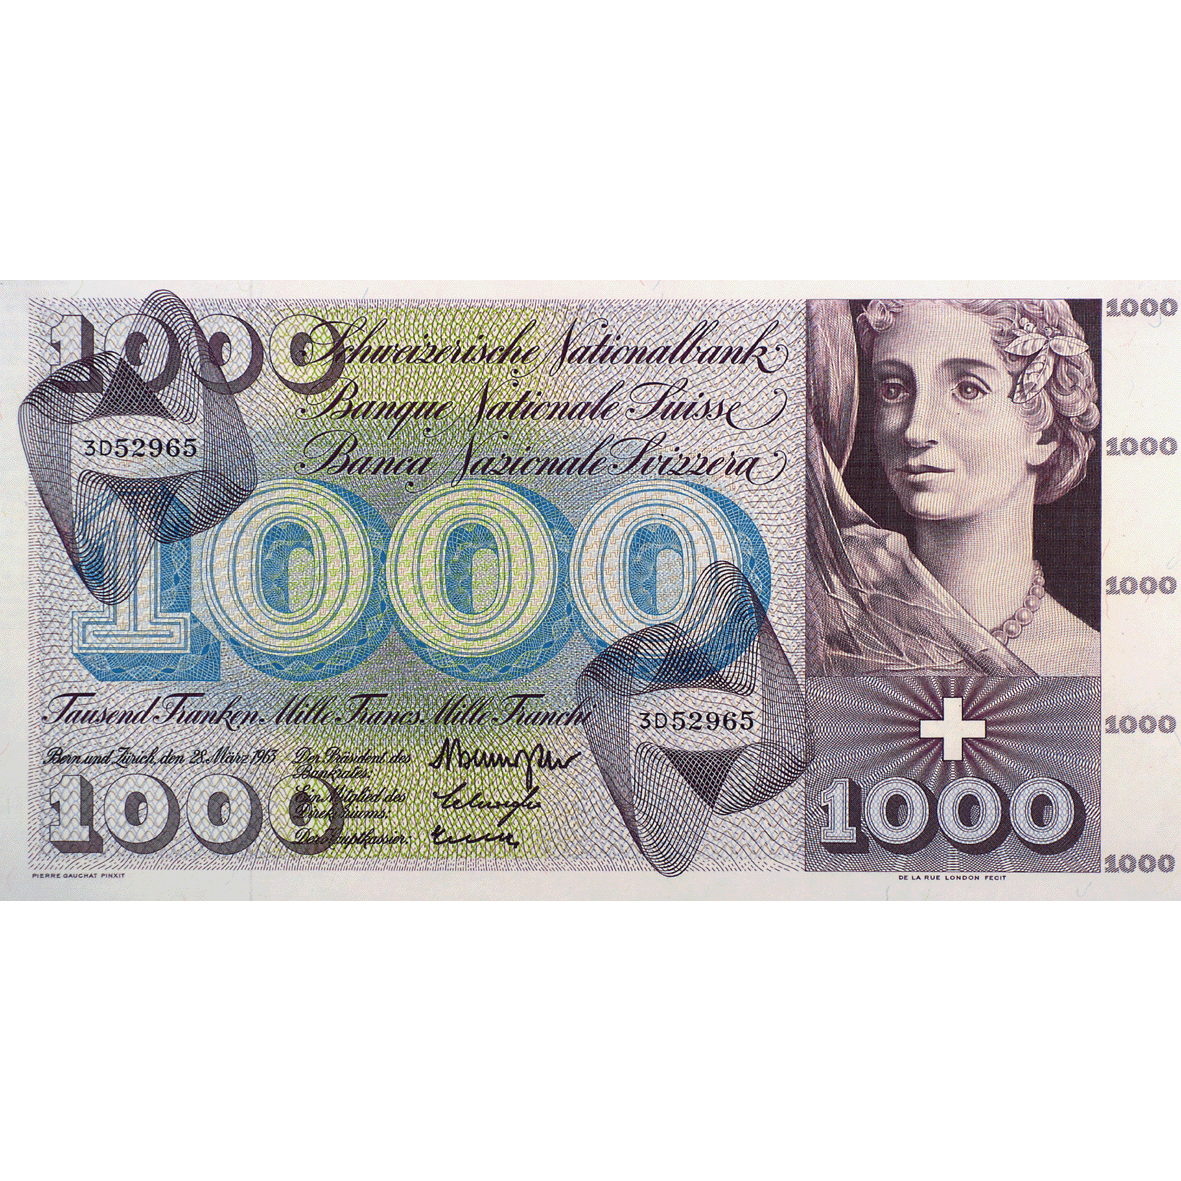 Swiss Confederation, 1,000 Francs (5th Banknote Series, in Circulation 1956-1980) (obverse)